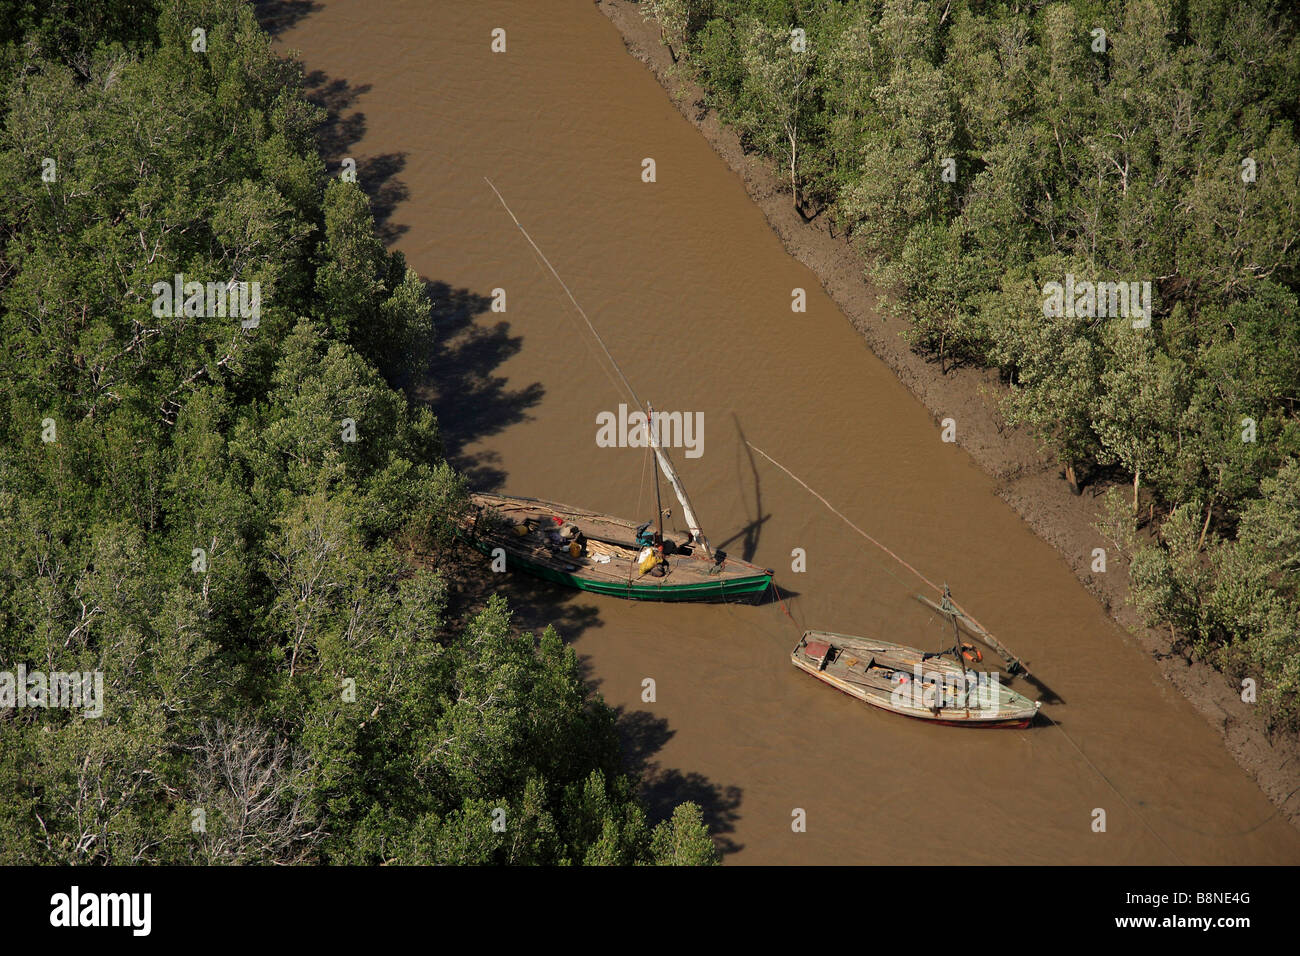 Aerial view of Dhows sheltering in a channel at low tide - Stock Image